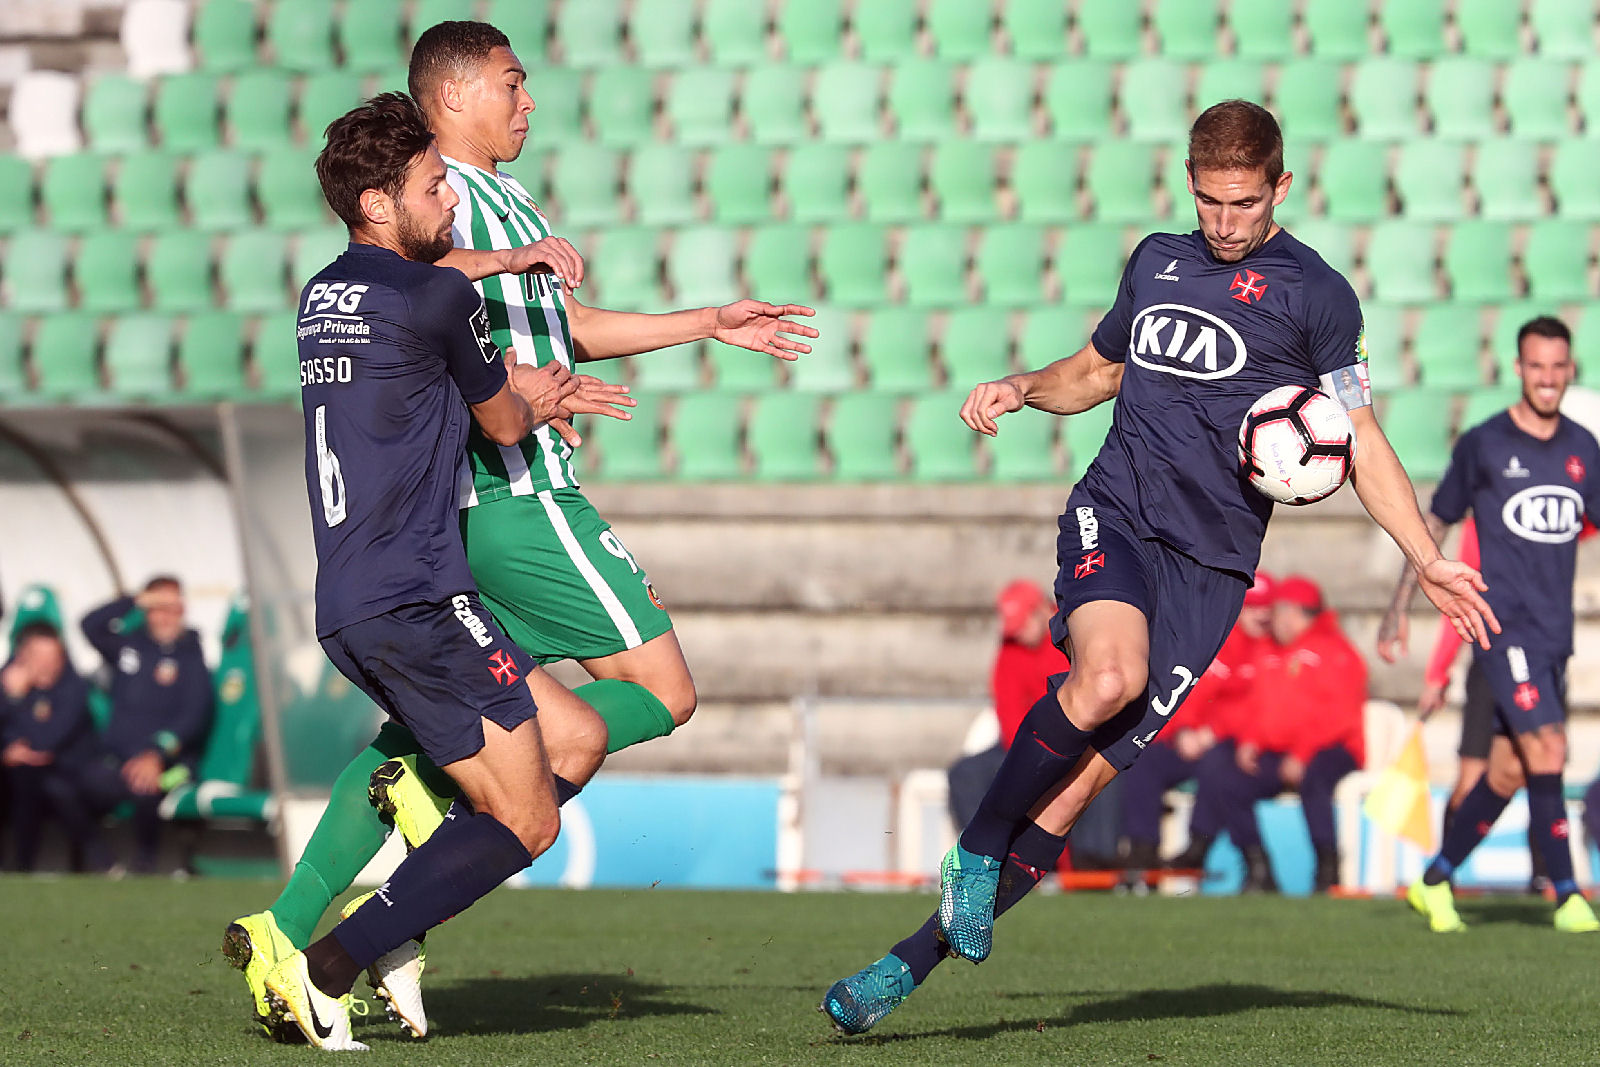 http://www.sportonstage.com/wp-content/uploads/2018/12/Rio-Ave-2-2-Belenenses-__AU1I1339.jpg